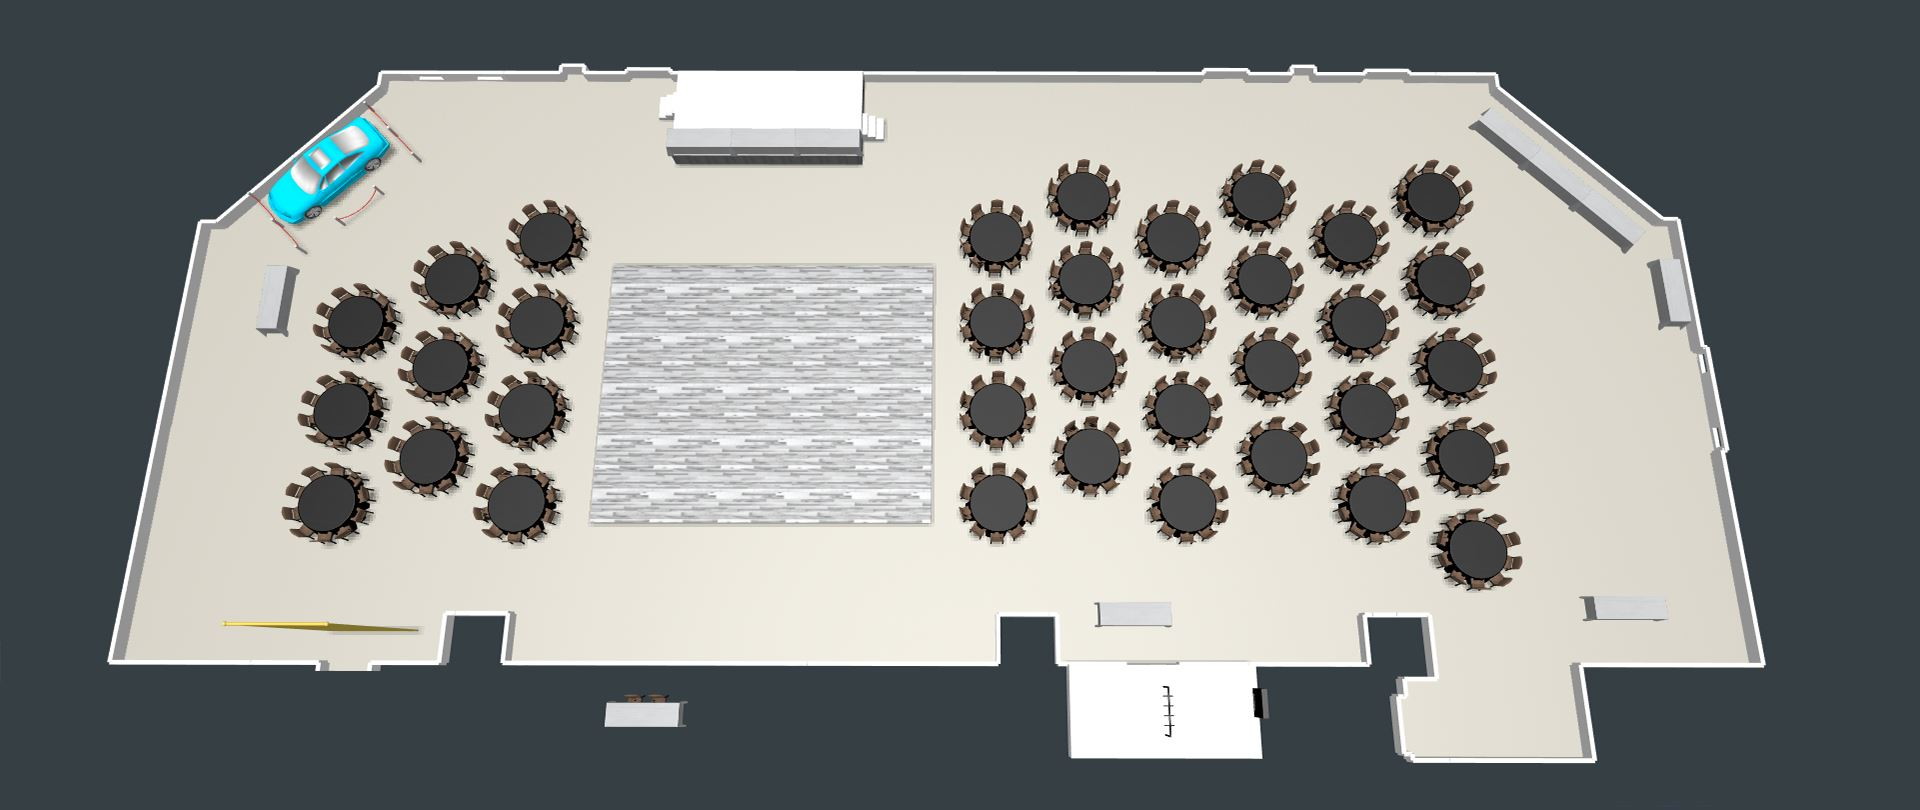 3D View of the Conference Center with Banquet Setup and Dance Floor